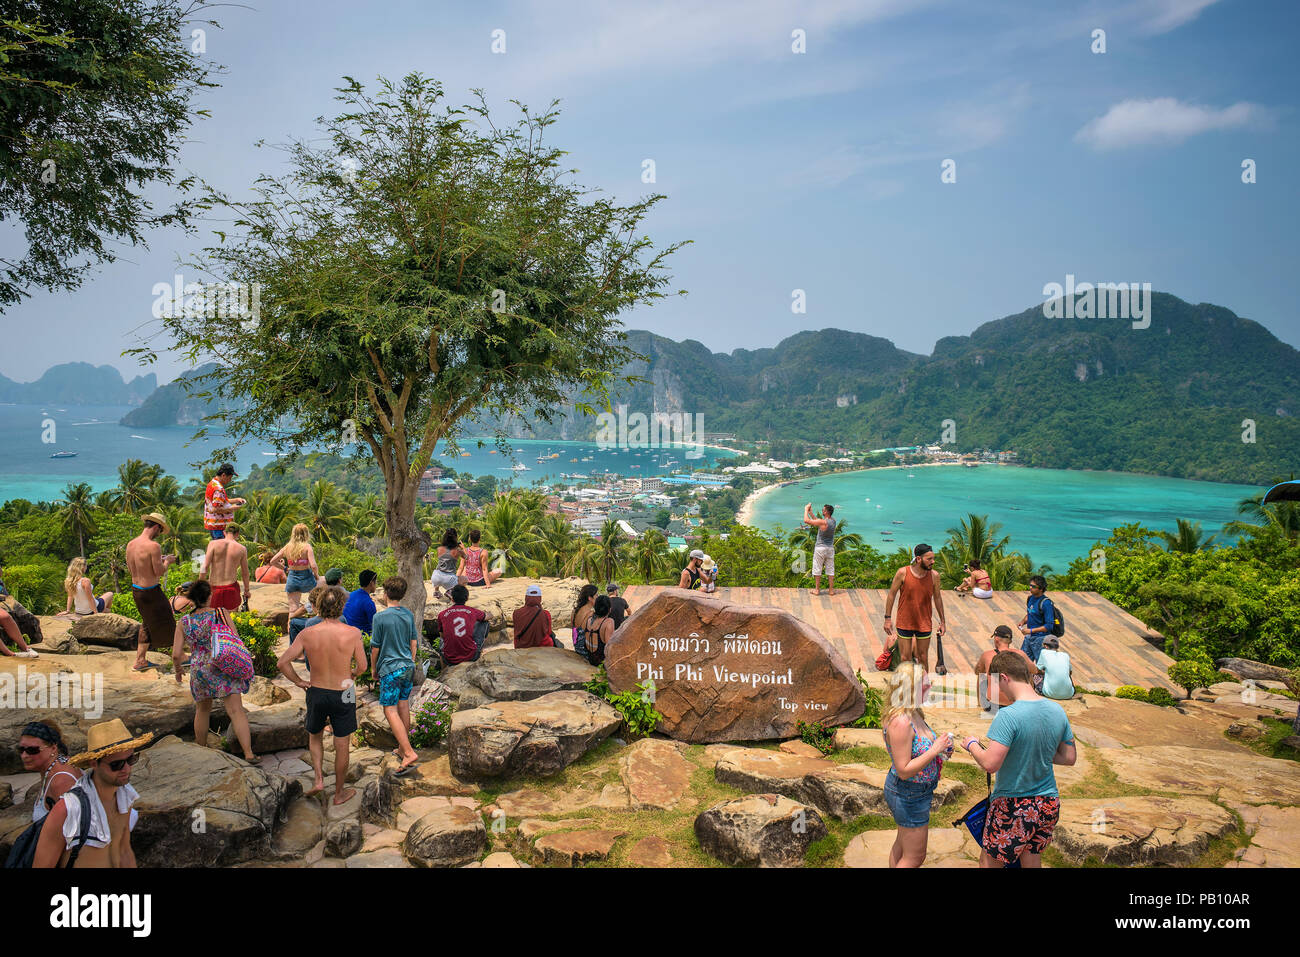 Tourists enjoy panoramic view over Koh Phi Phi Island in Thailand - Stock Image